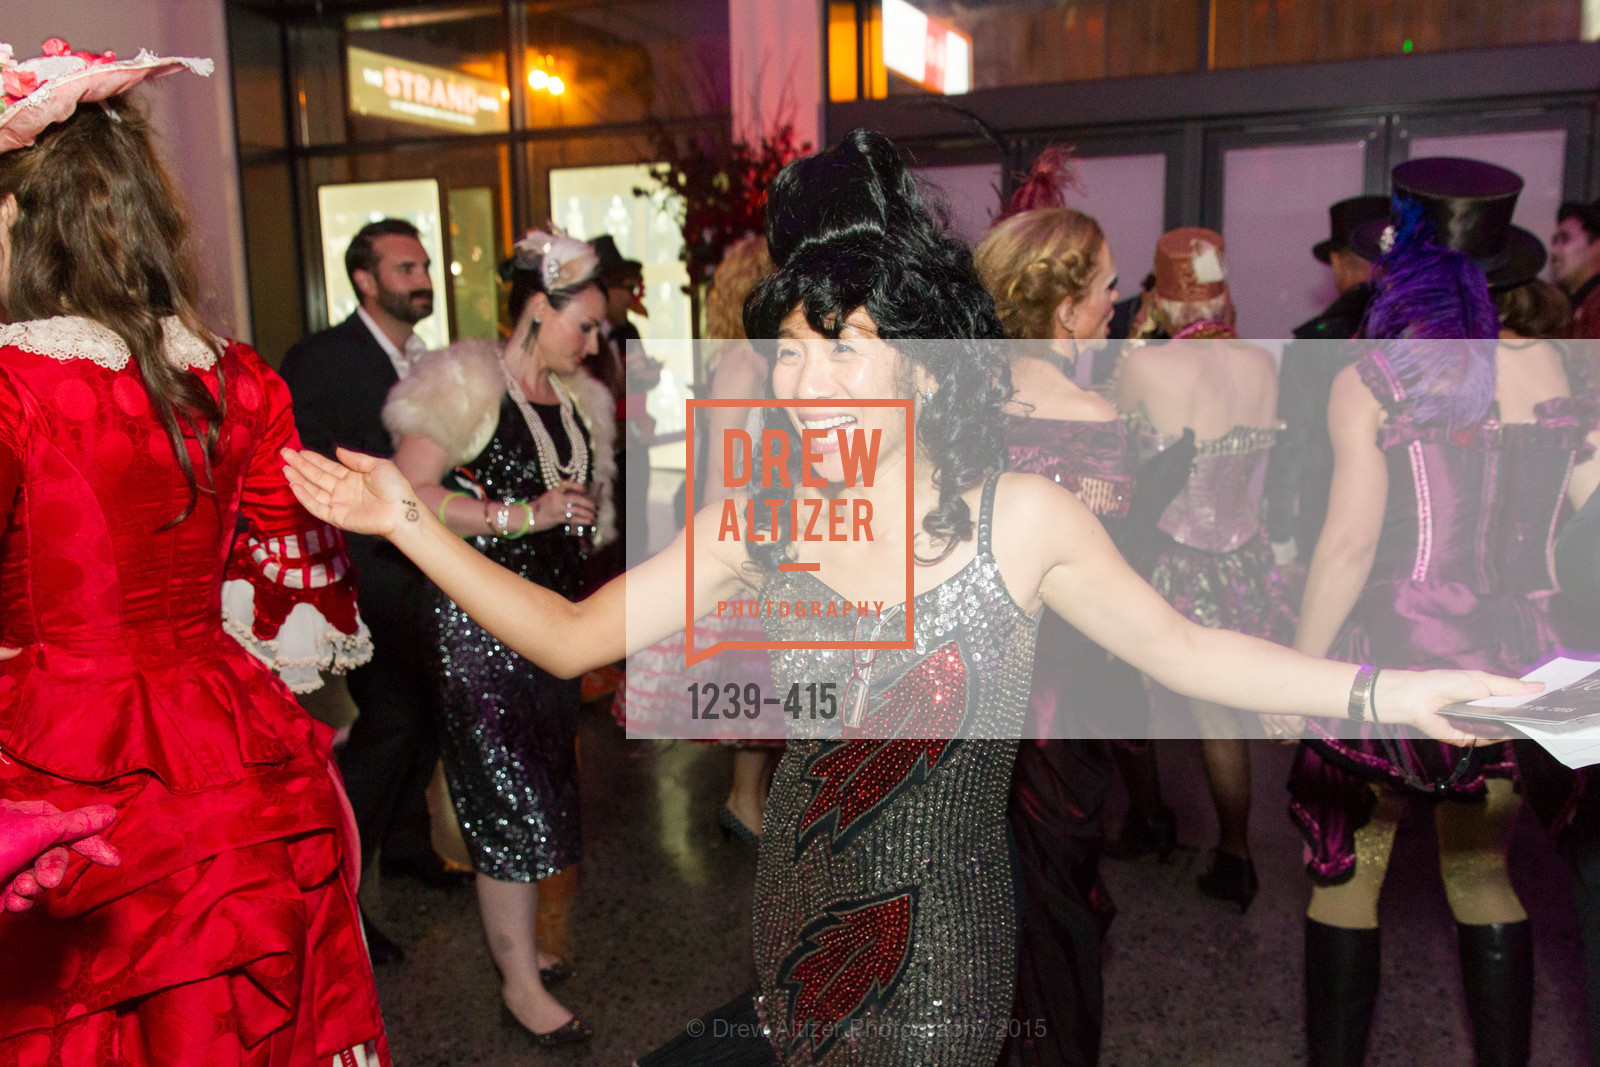 Extras, SPOOKED AT THE STRAND Presented by the American Conservatory Theater, October 26th, 2015, Photo,Drew Altizer, Drew Altizer Photography, full-service event agency, private events, San Francisco photographer, photographer California